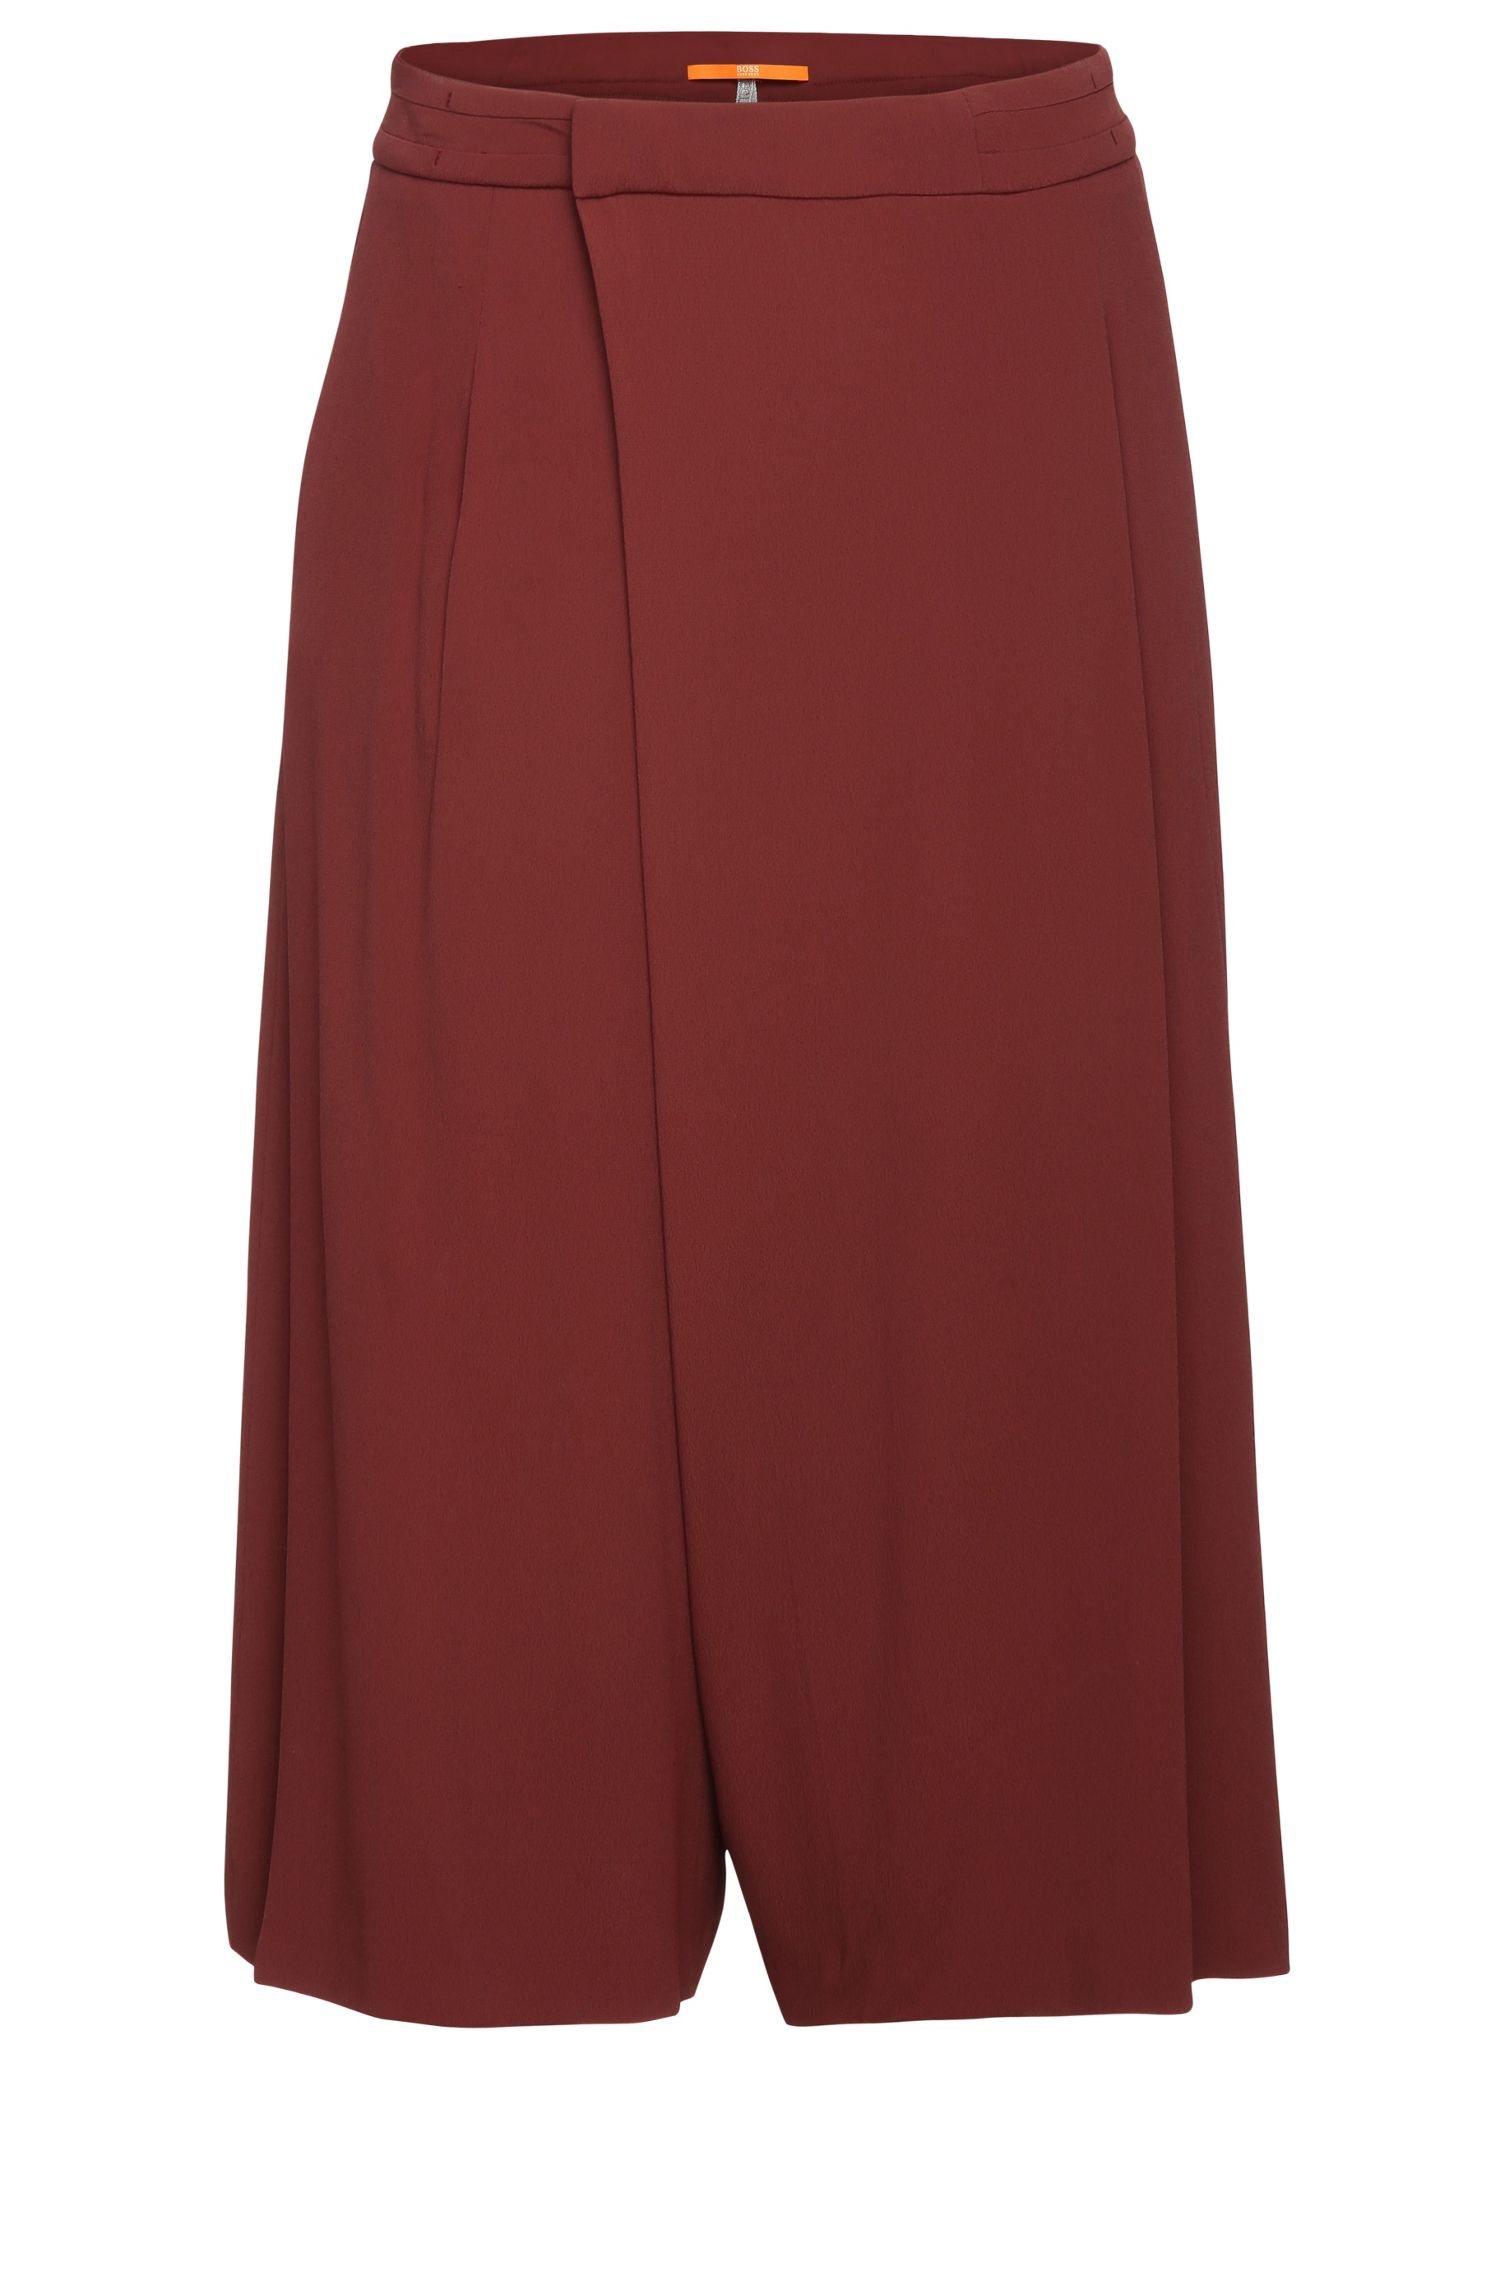 Divided skirt in stretch viscose crepe: 'Belydia'